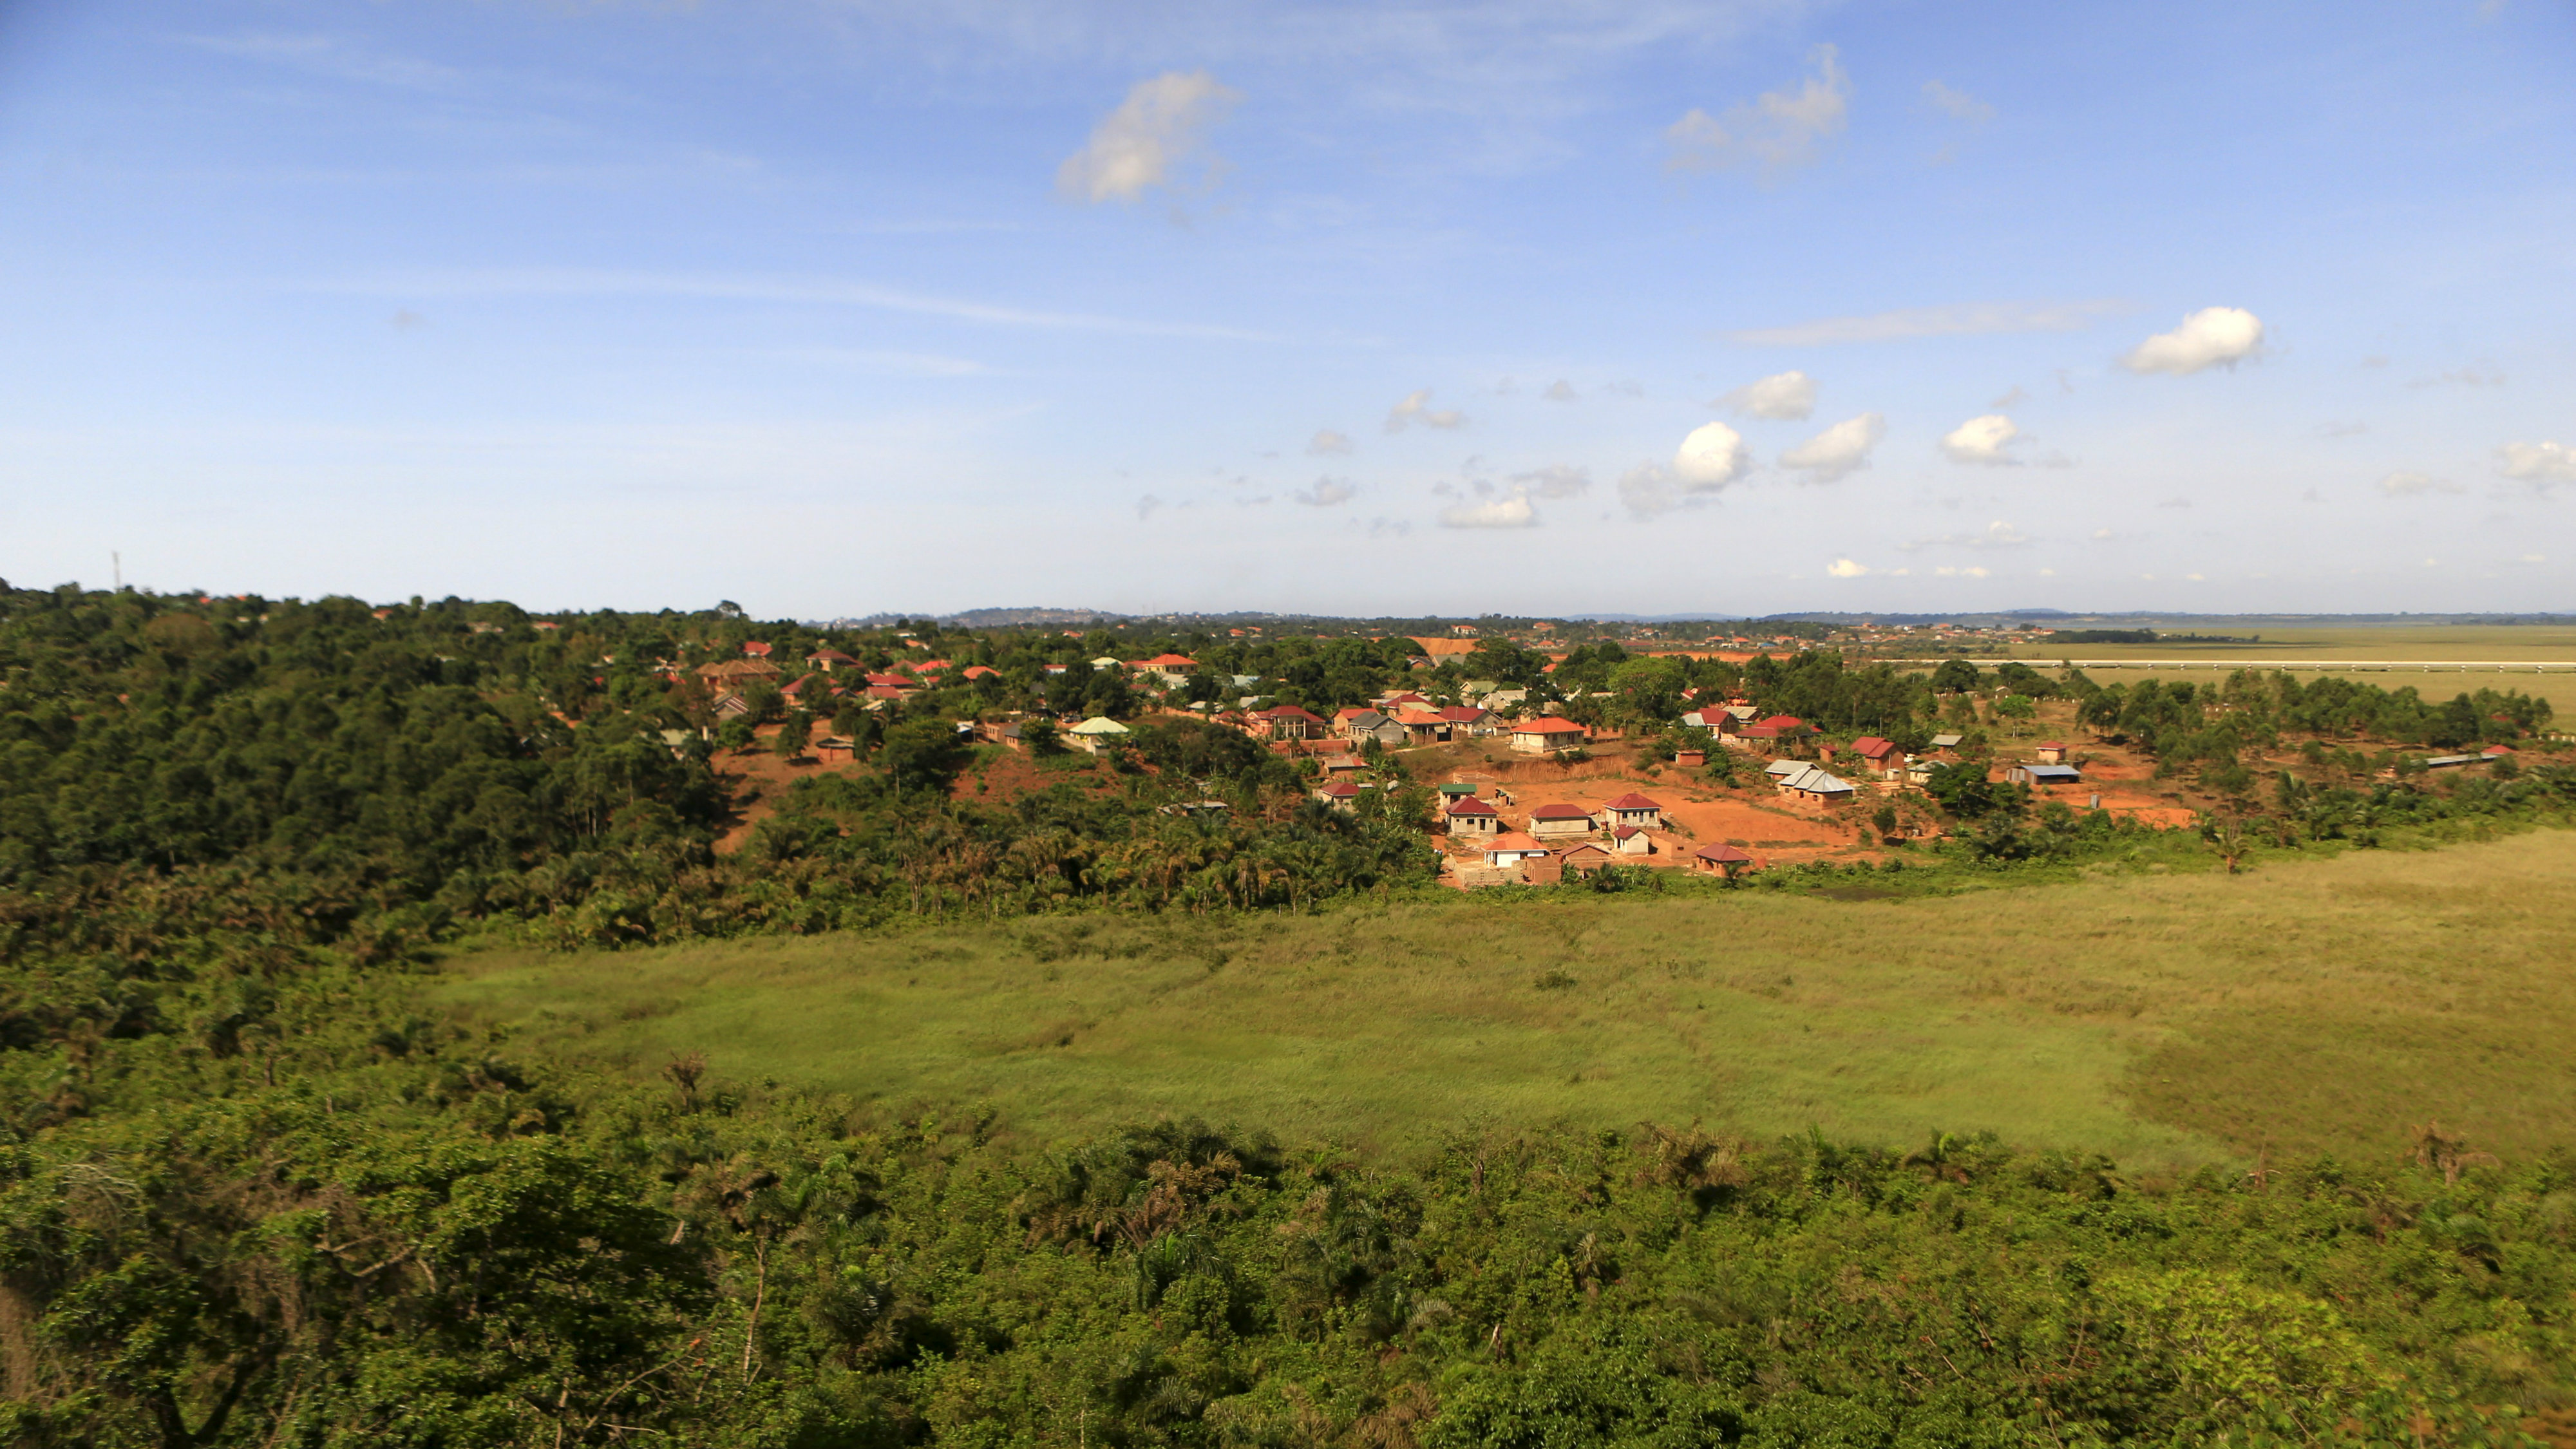 Houses are built in the periphery of the Zika Forest in Entebbe, south of Uganda's capital Kampala March 2, 2016. In a patch of forest near Lake Victoria in Uganda, mosquitoes known to carry the Zika virus buzz with little seeming worry amid the local community.